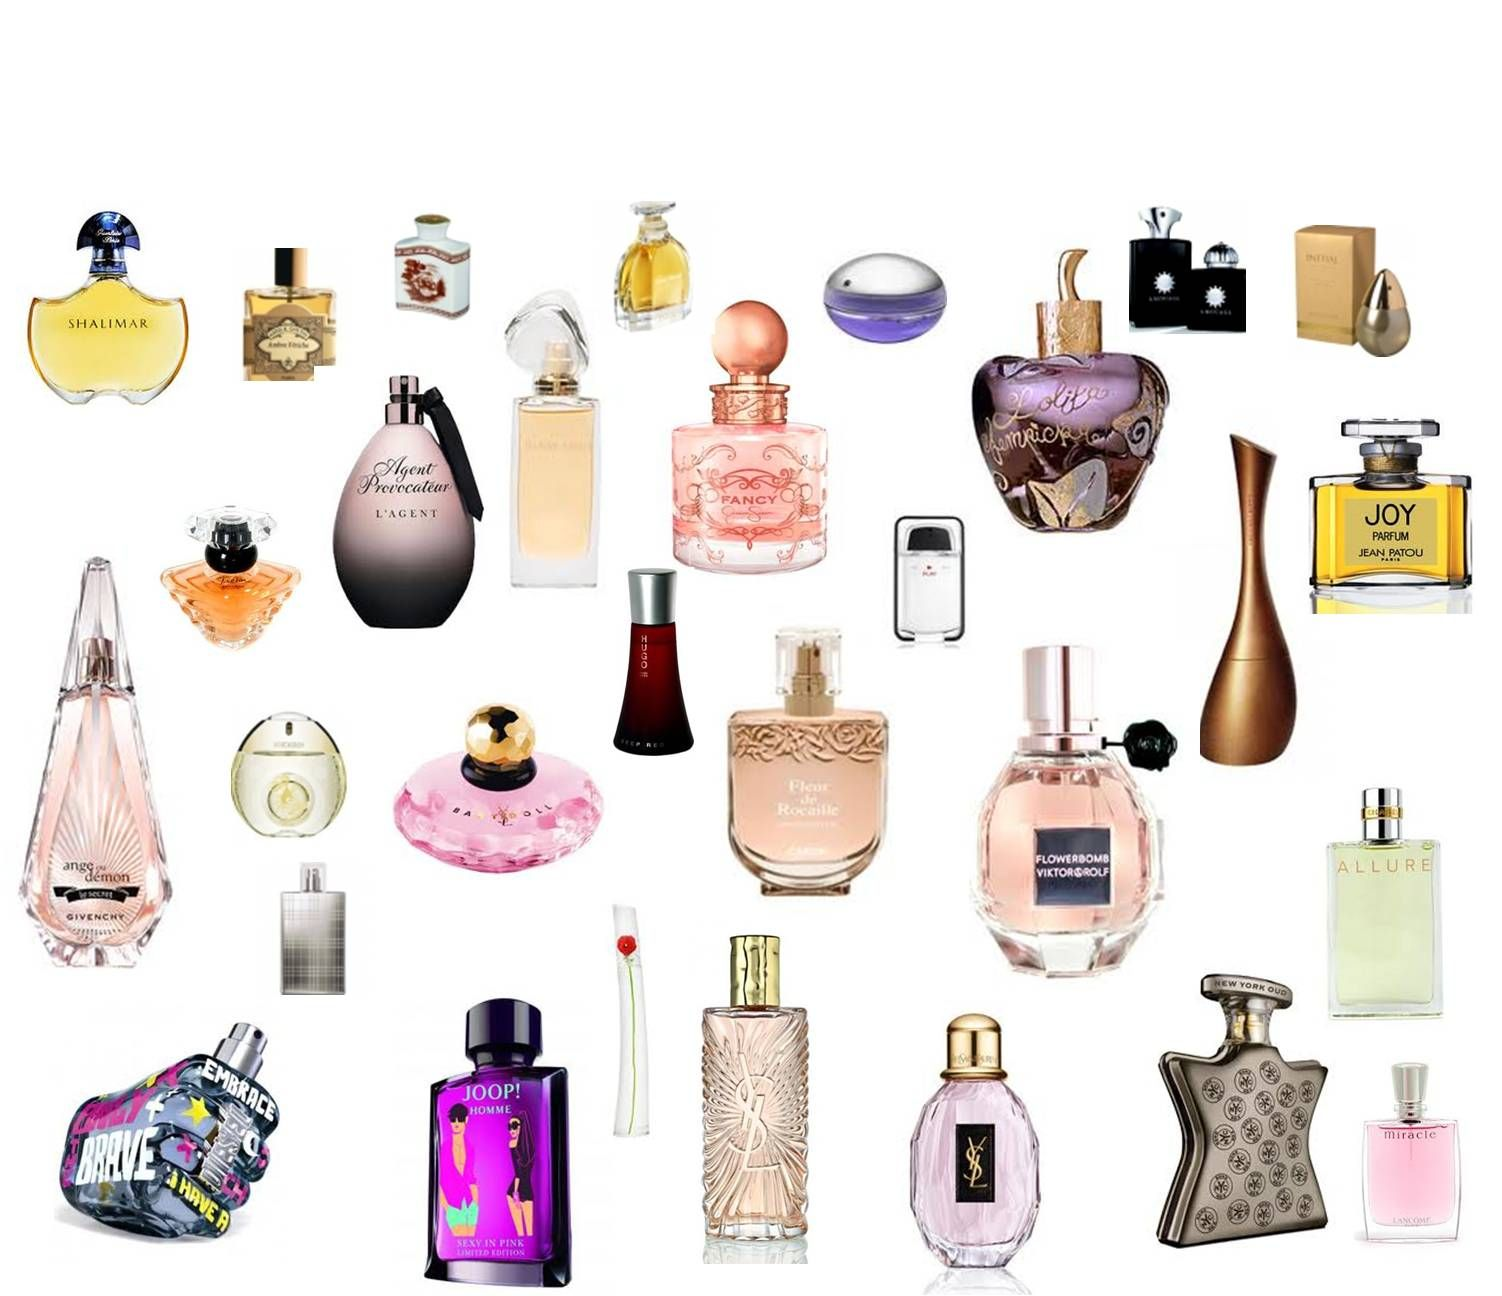 Differents-parfums1.jpg (1502×1296)